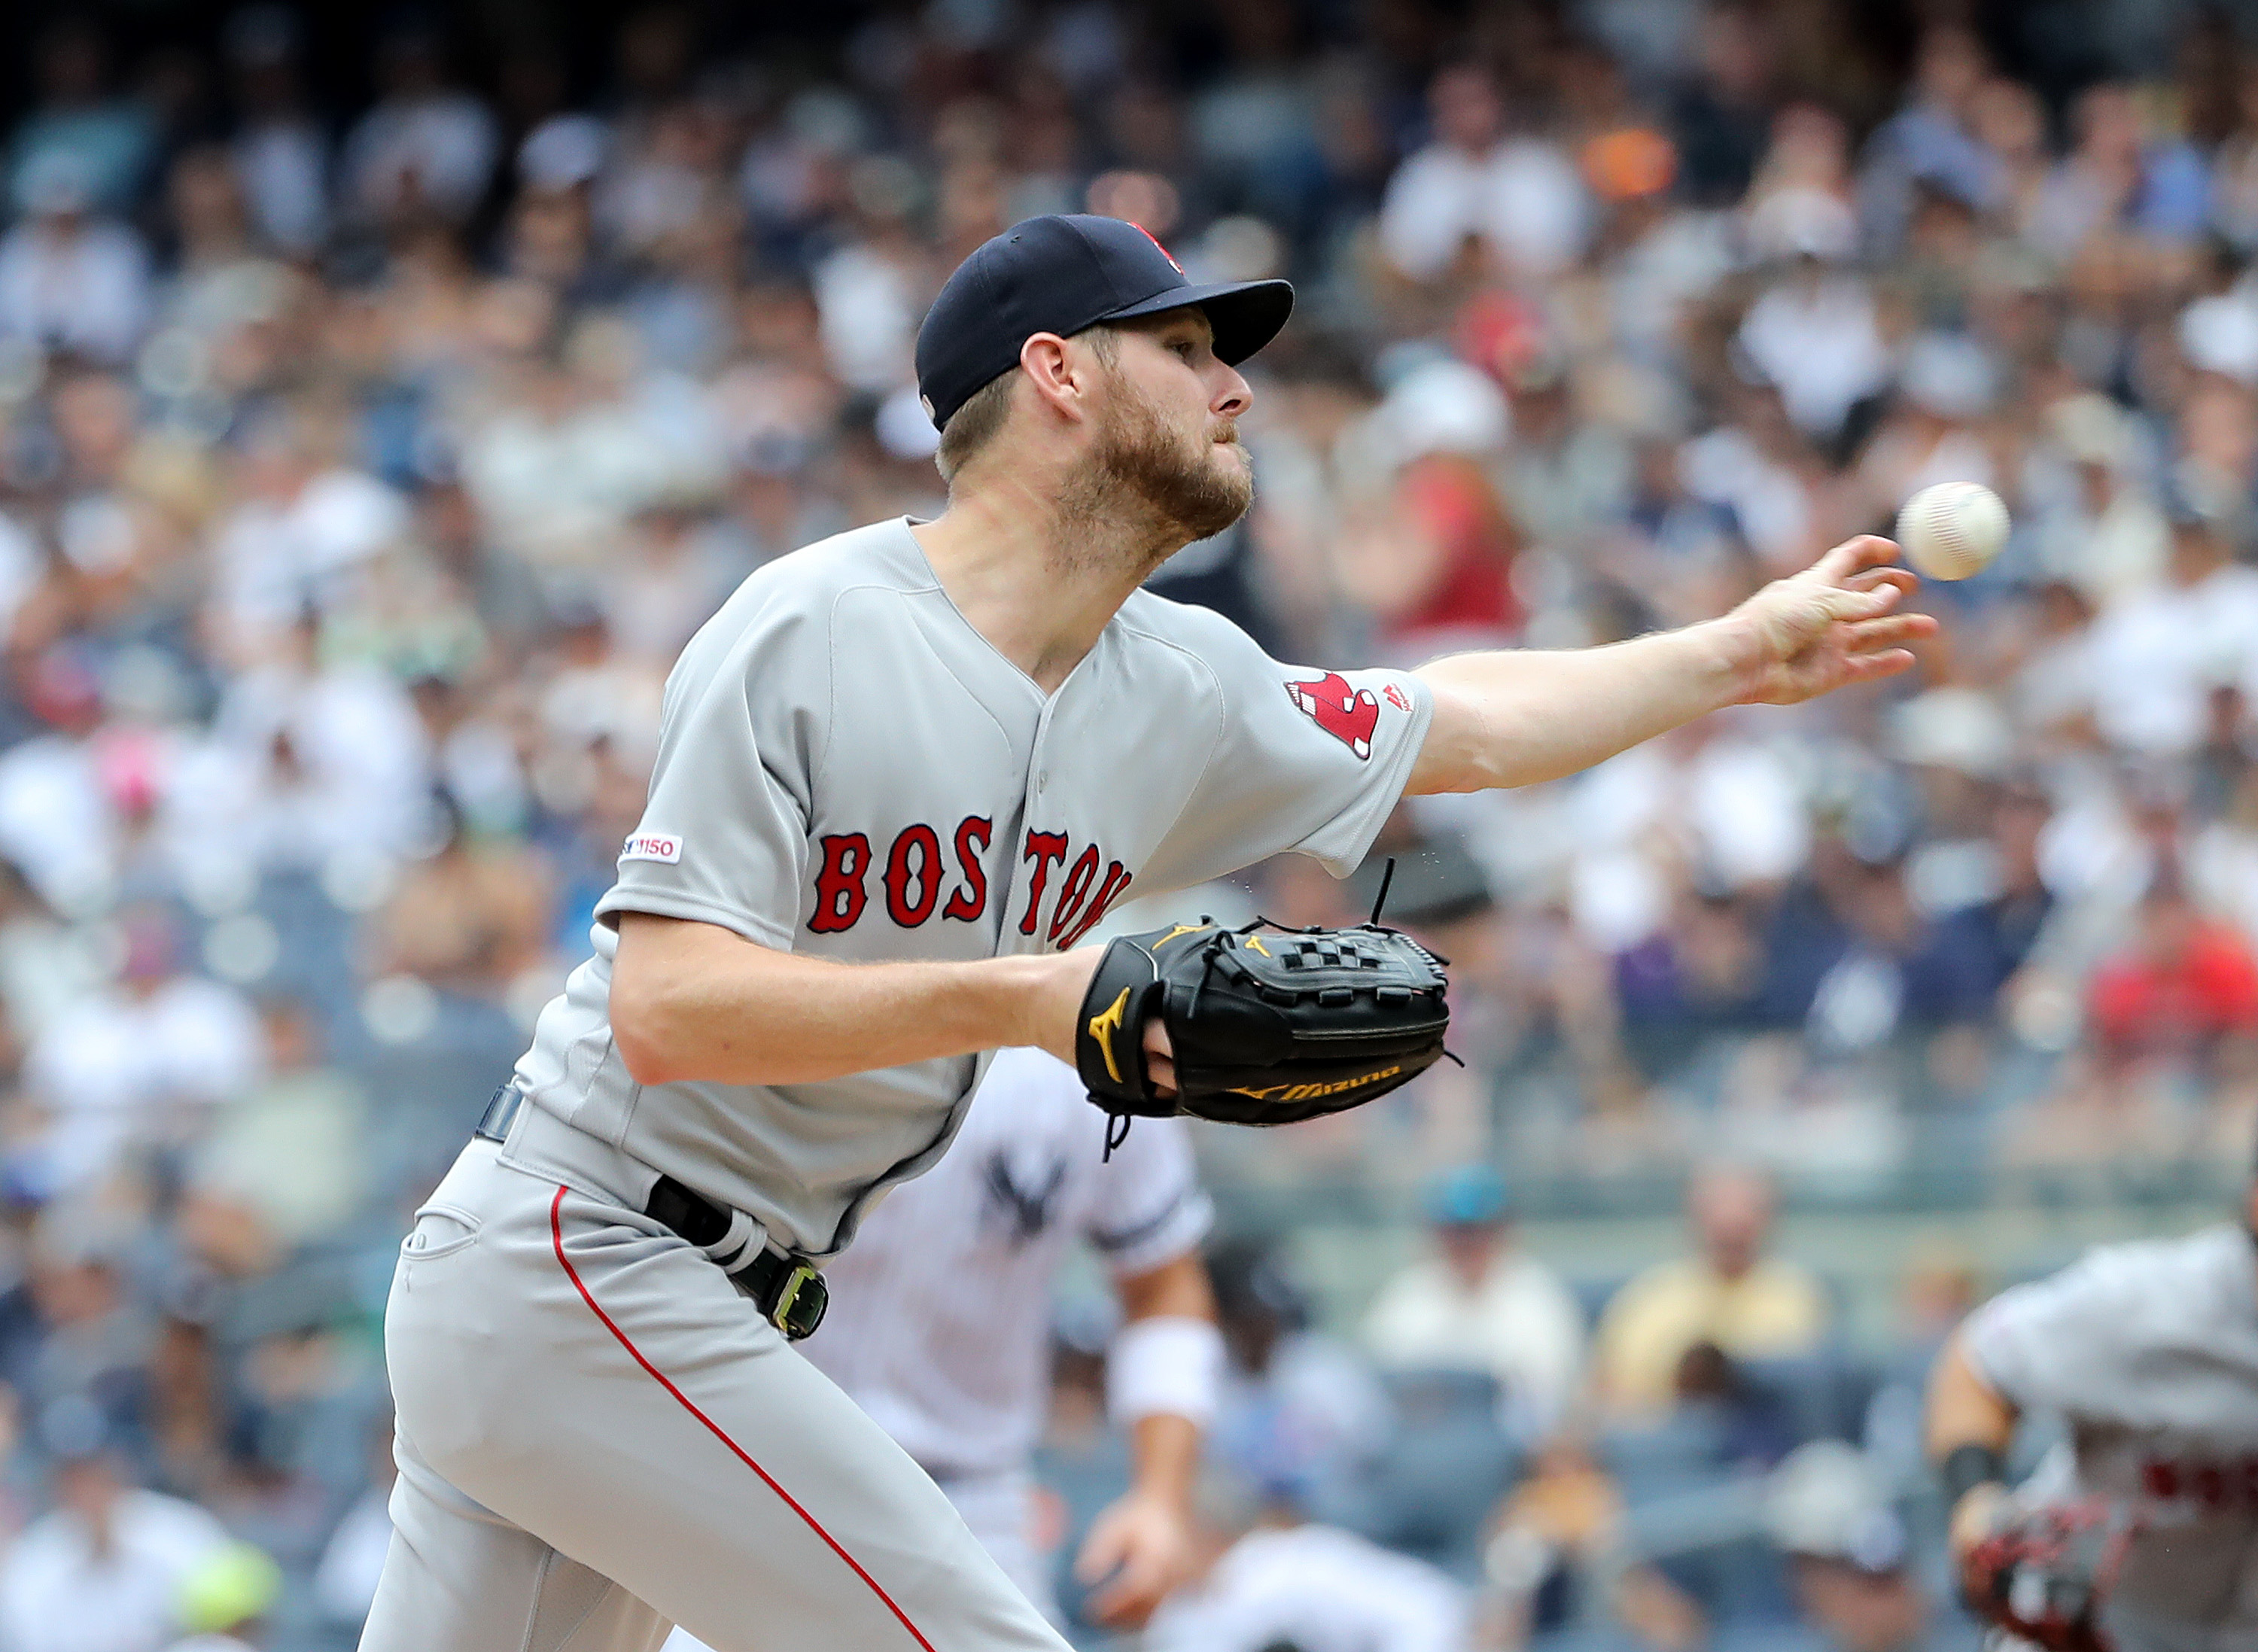 Red Sox Schedule July 2020 Earlier starts on weeknights, Red Sox, Rays, Orioles highlight